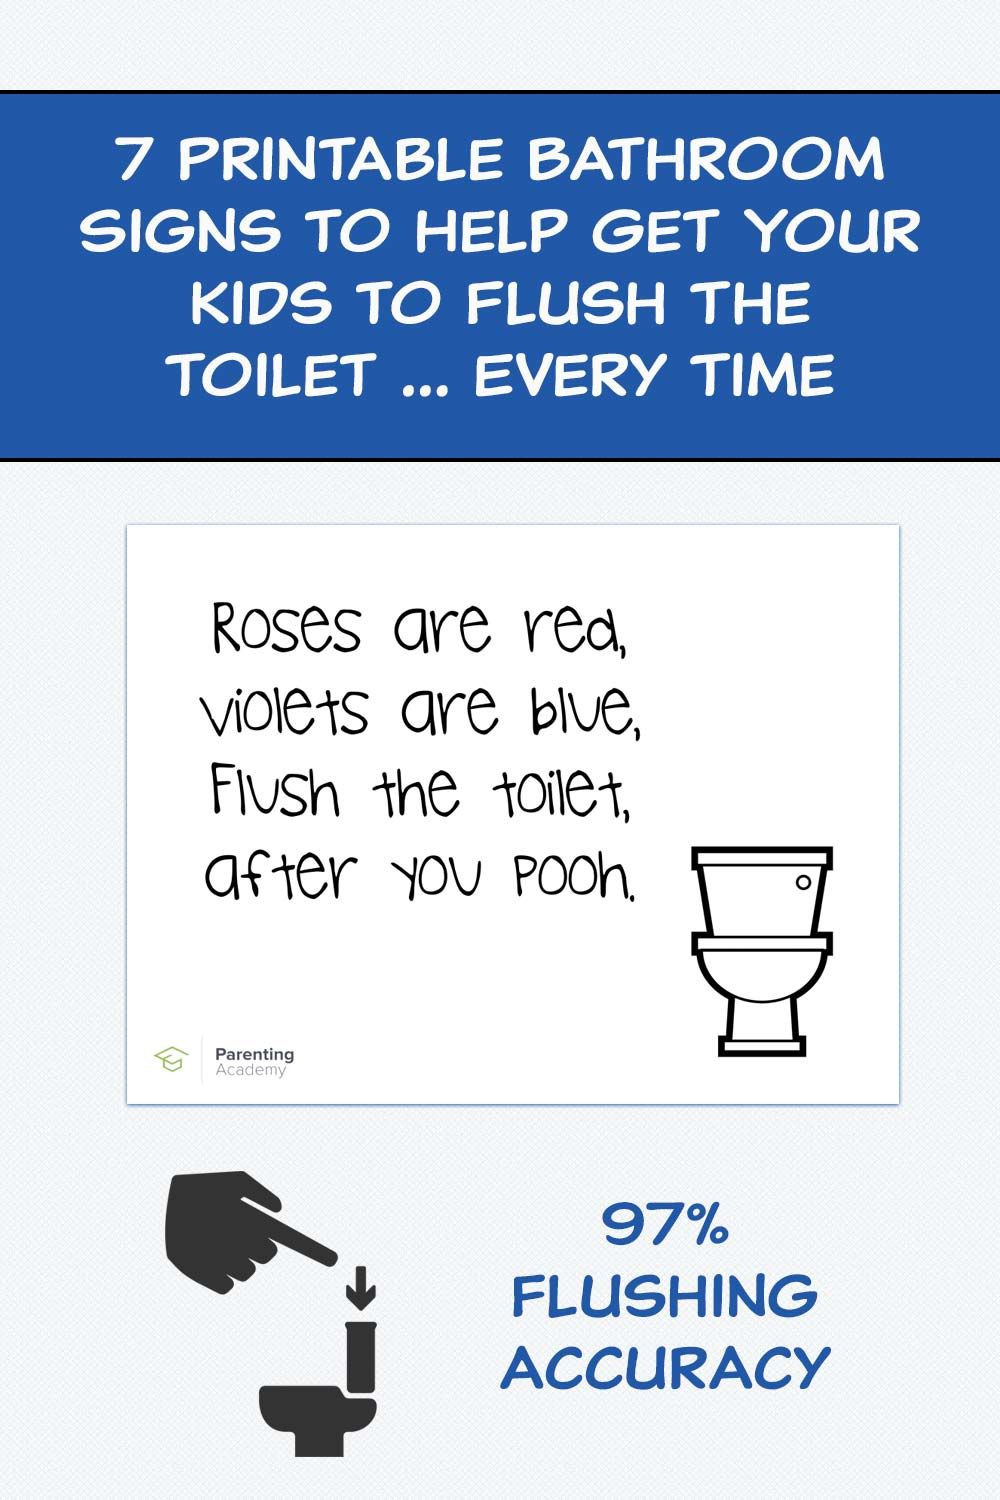 7 Printable Bathroom Signs To Help Get Your Kids To Flush The Toilet Every Time Kids Bathroom Sign Bathroom Signs Printable Bathroom Signs